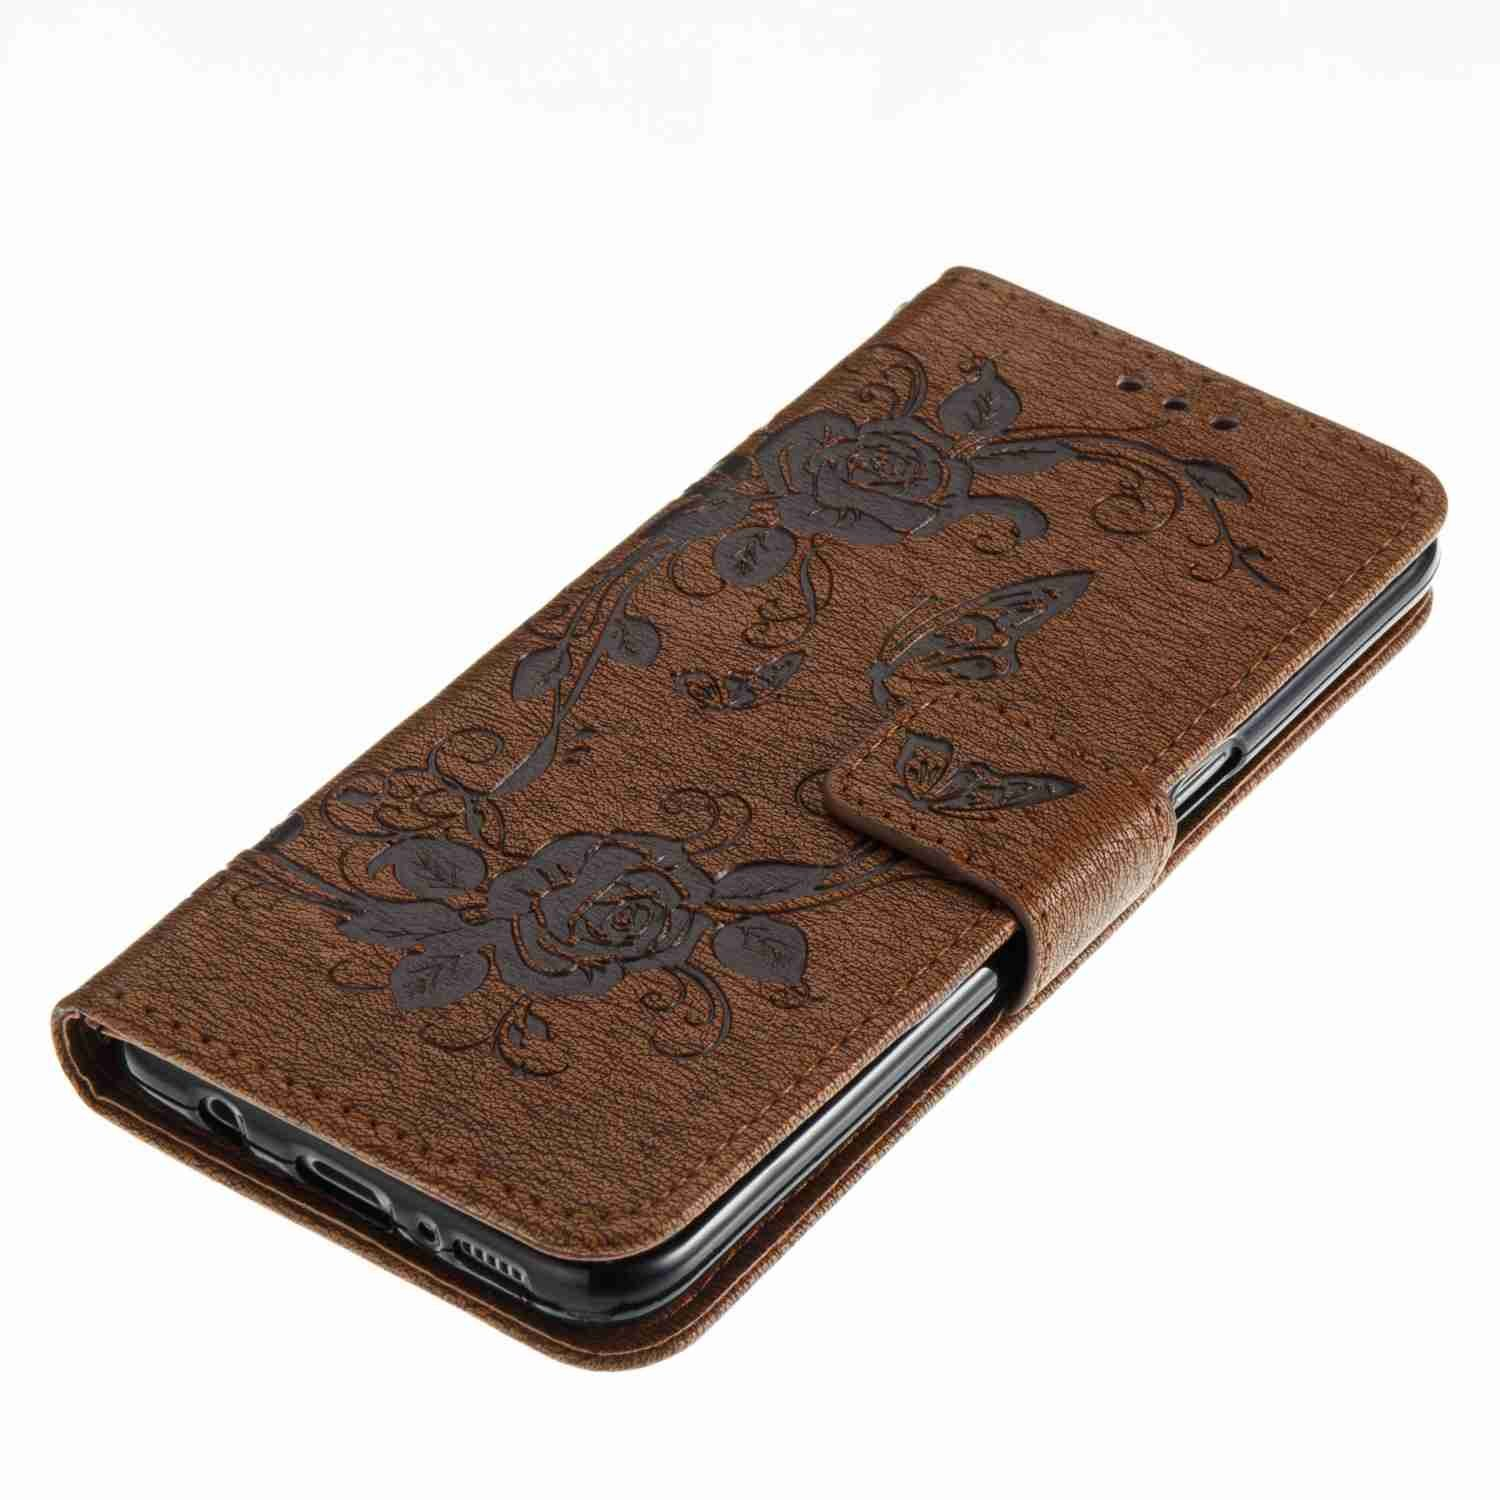 Brown Butterfly Flower Design Strap Case for Samsung Galaxy S8,Flip Wallet Leather Cover for Samsung Galaxy S8,Herzzer Premium Pretty Elegant 1 x Free Black Cellphone Kickstand + PU Leather Fold Stand Card Holders Smart Case Cover for Samsung Galaxy S8